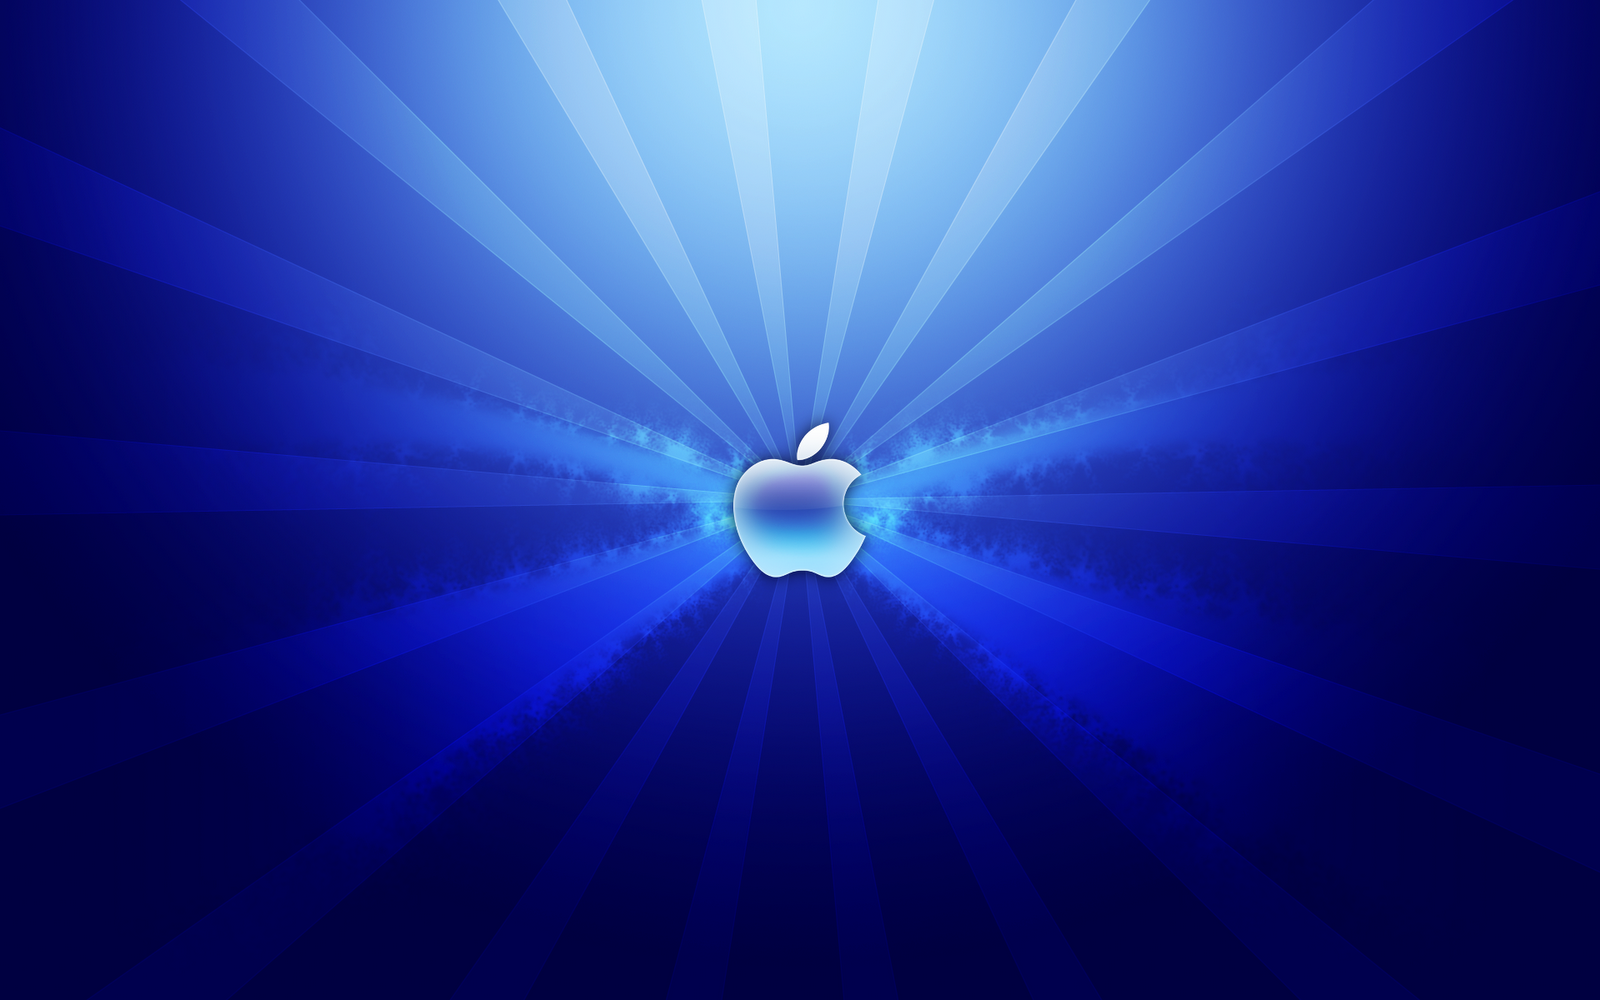 Blue Apple Laptop Wallpaper on this Cool Laptop Wallpapers website 1600x1000